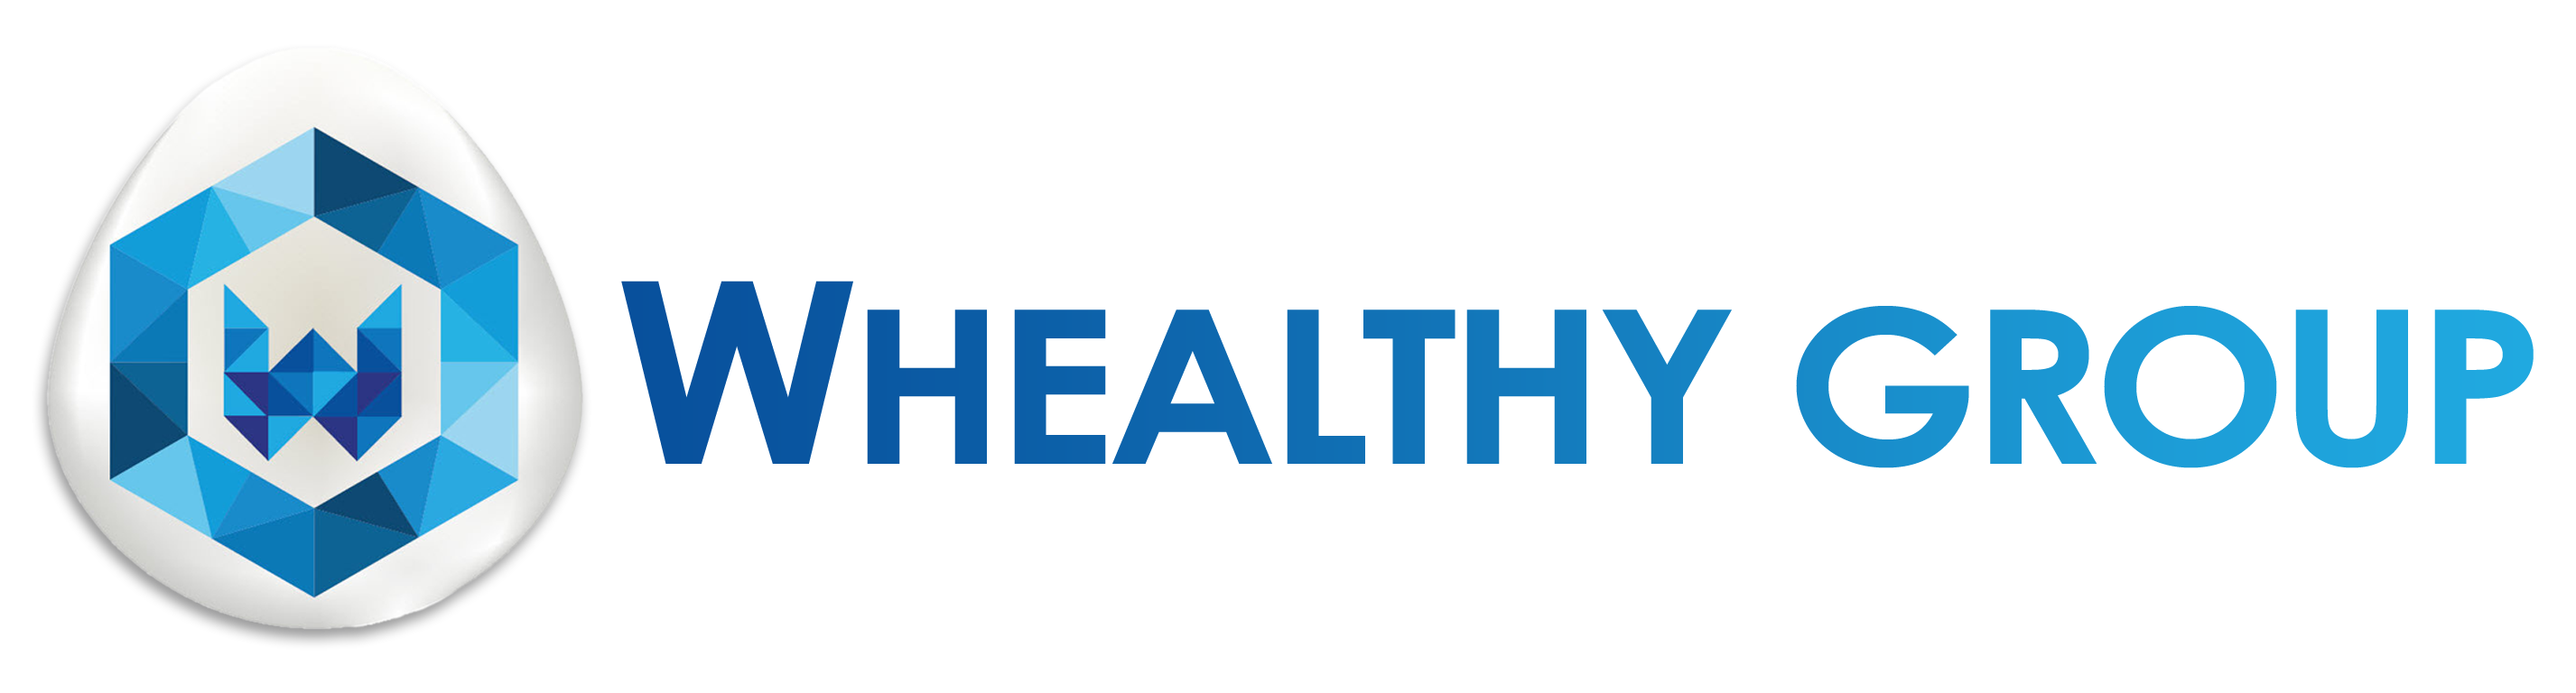 Whealthy Group | Your health is your wealth!